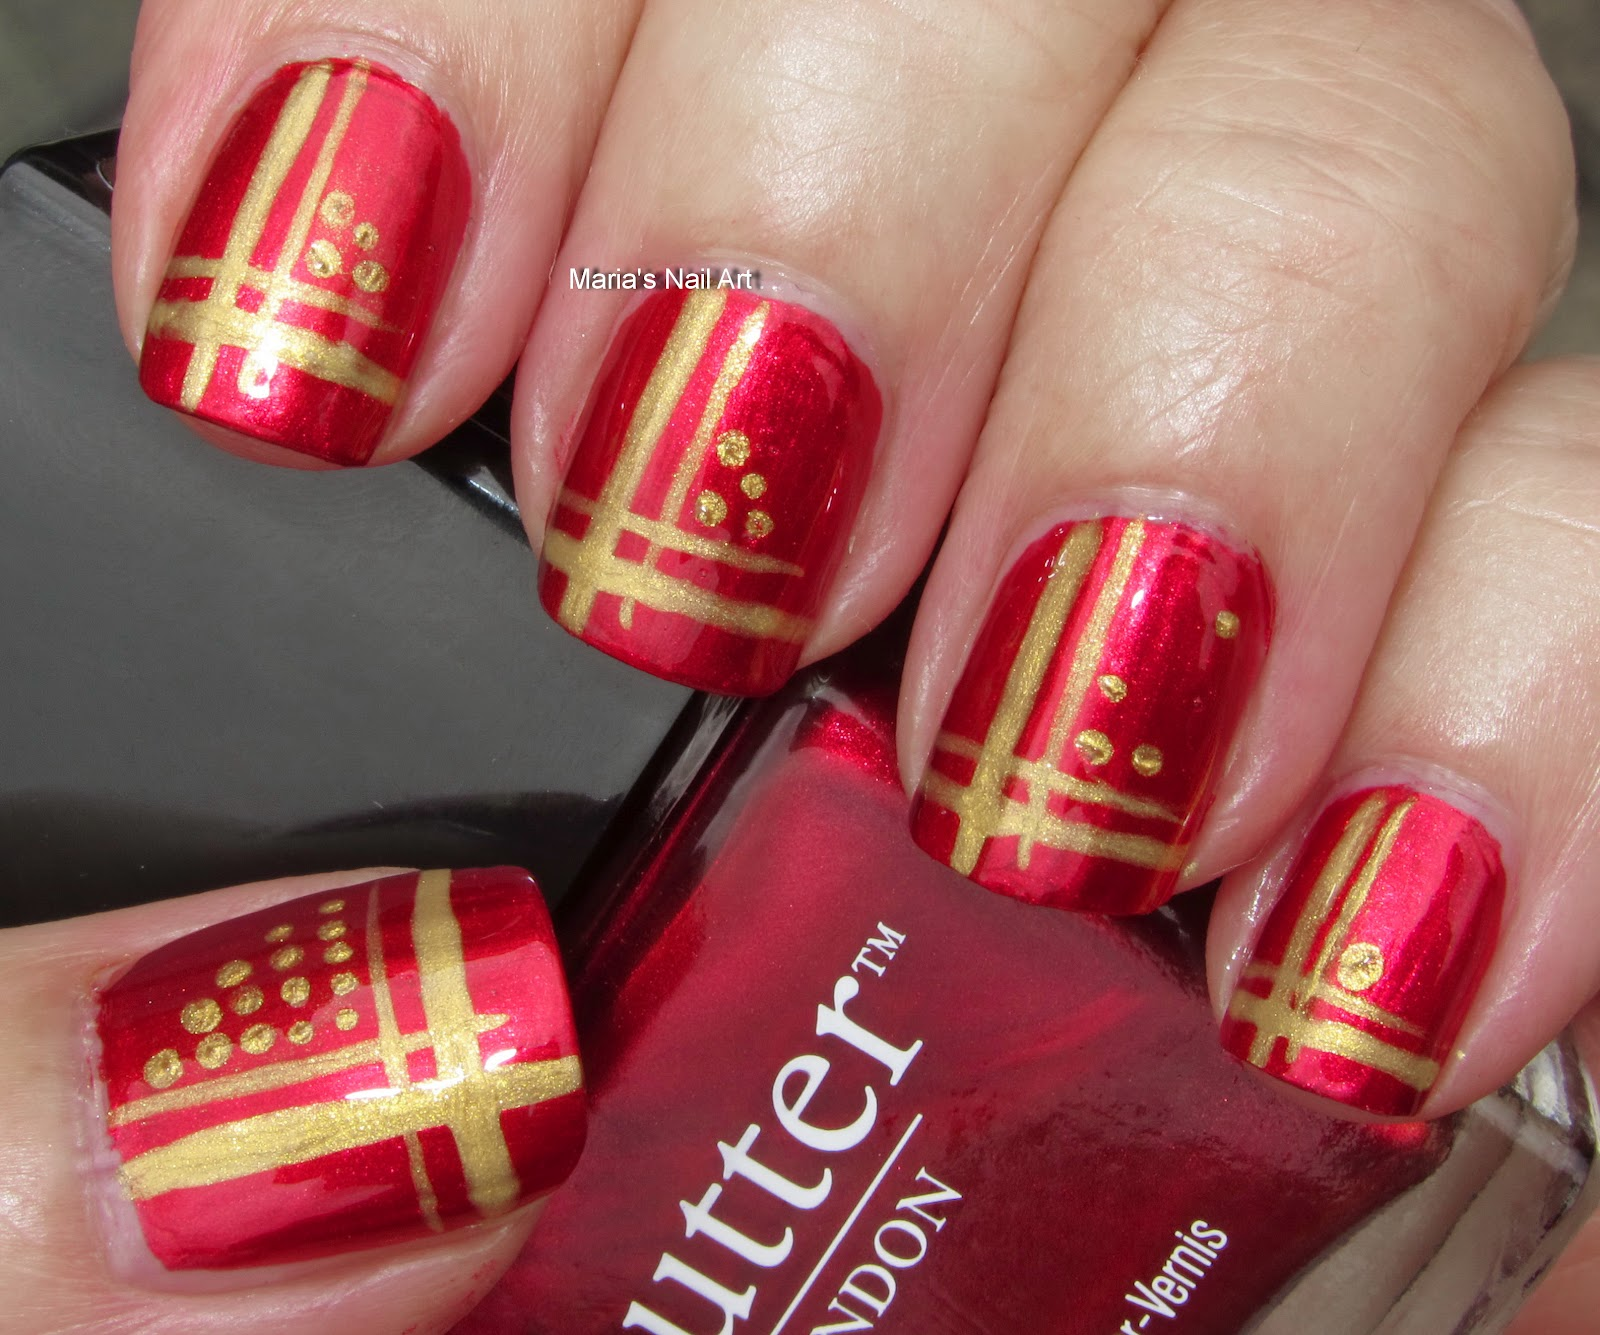 Marias Nail Art And Polish Blog Flushed With Stripes And: Marias Nail Art And Polish Blog: Red And Gold Stripes And Dots